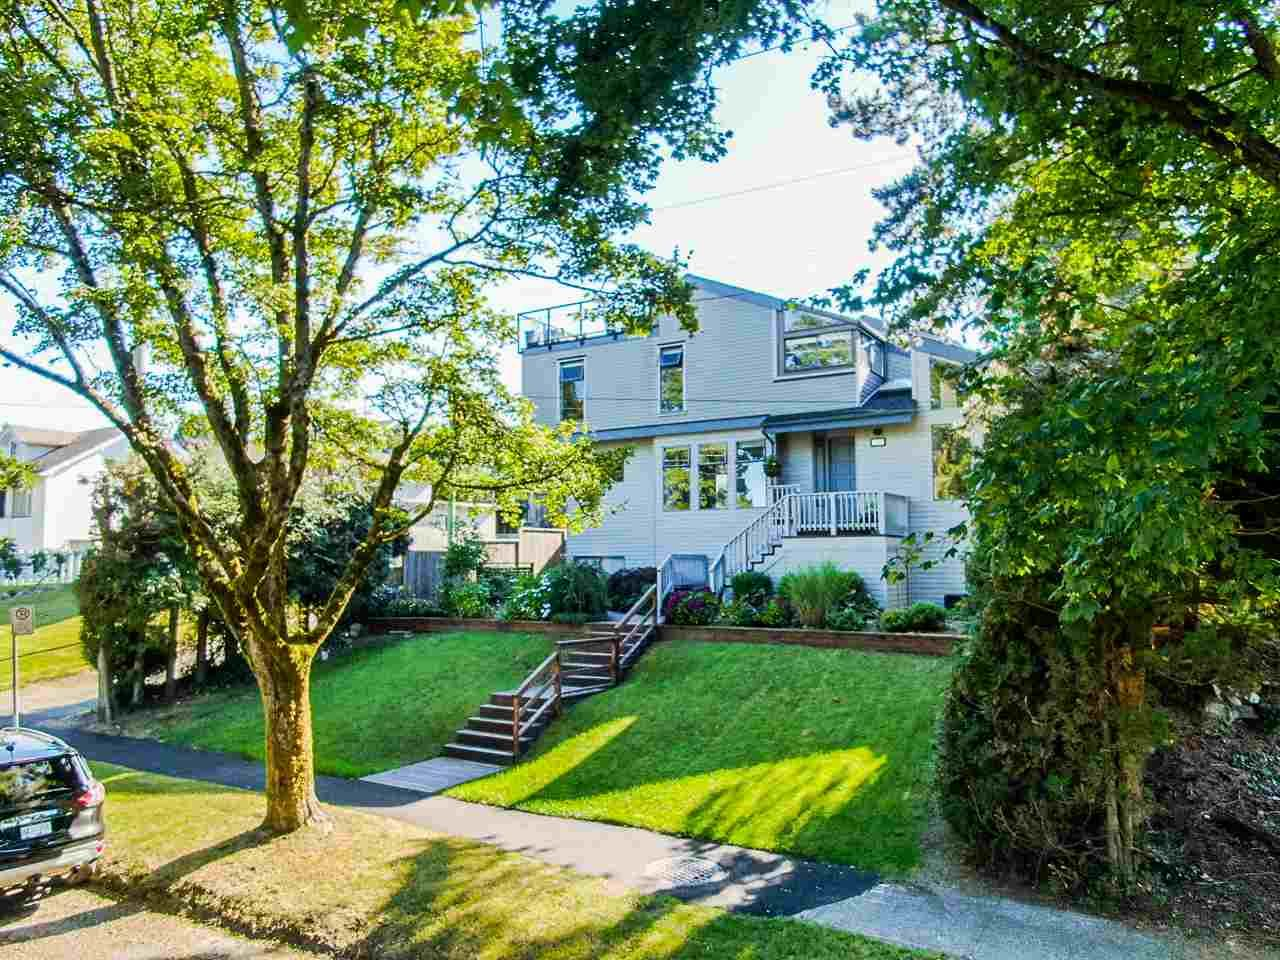 """Main Photo: 150 KOOTENAY Street in Vancouver: Hastings Sunrise House for sale in """"VANCOUVER HEIGHTS"""" (Vancouver East)  : MLS®# R2480770"""